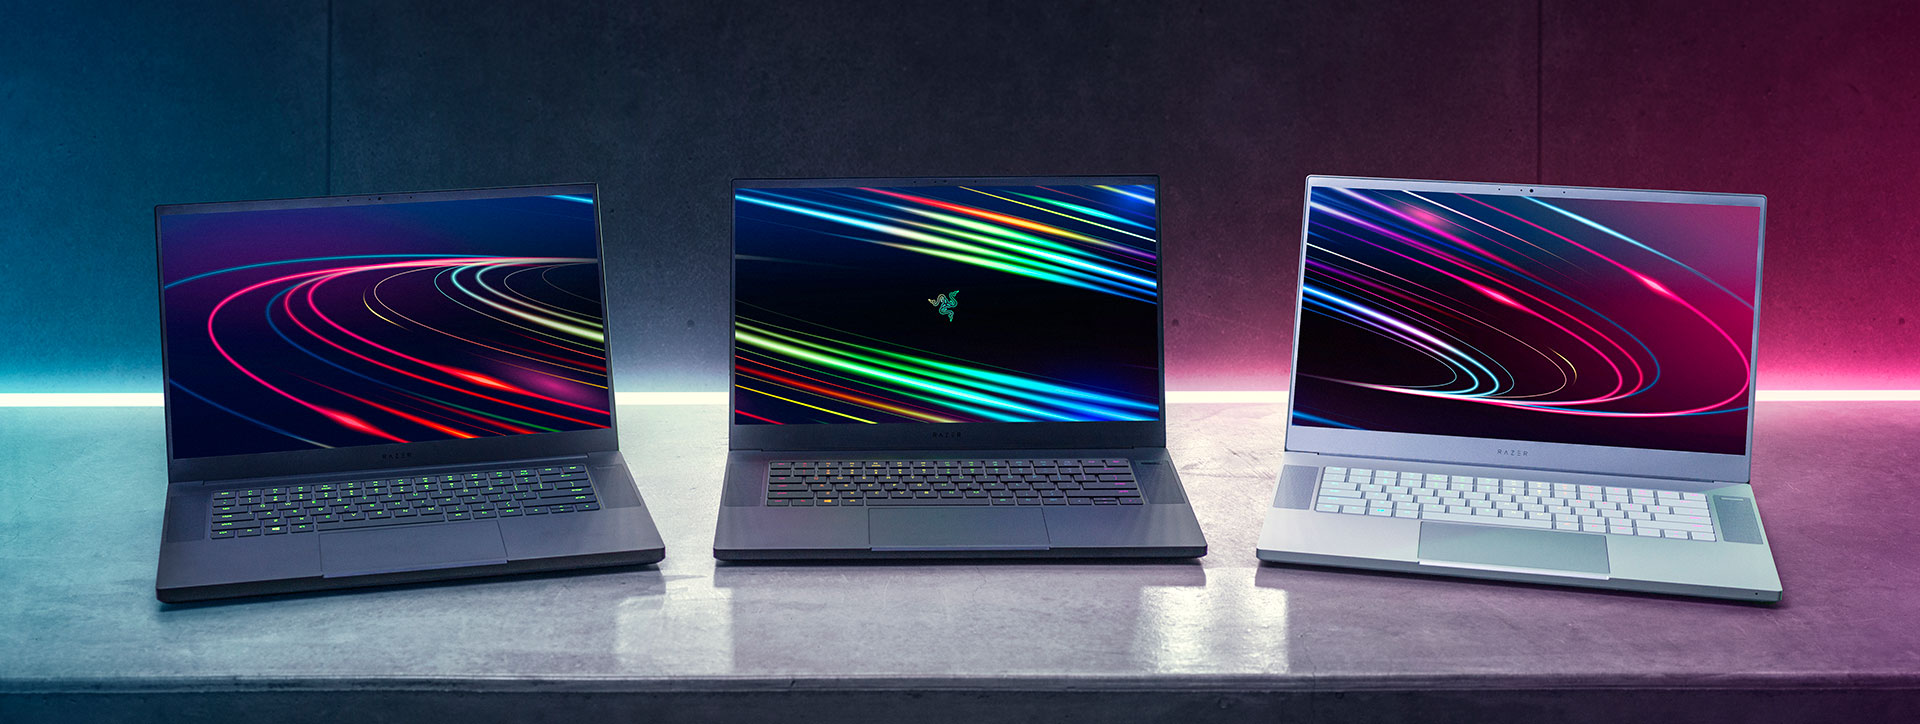 2020 Razer Blade 15 lineup- Base and Advanced, Black or White color schemes